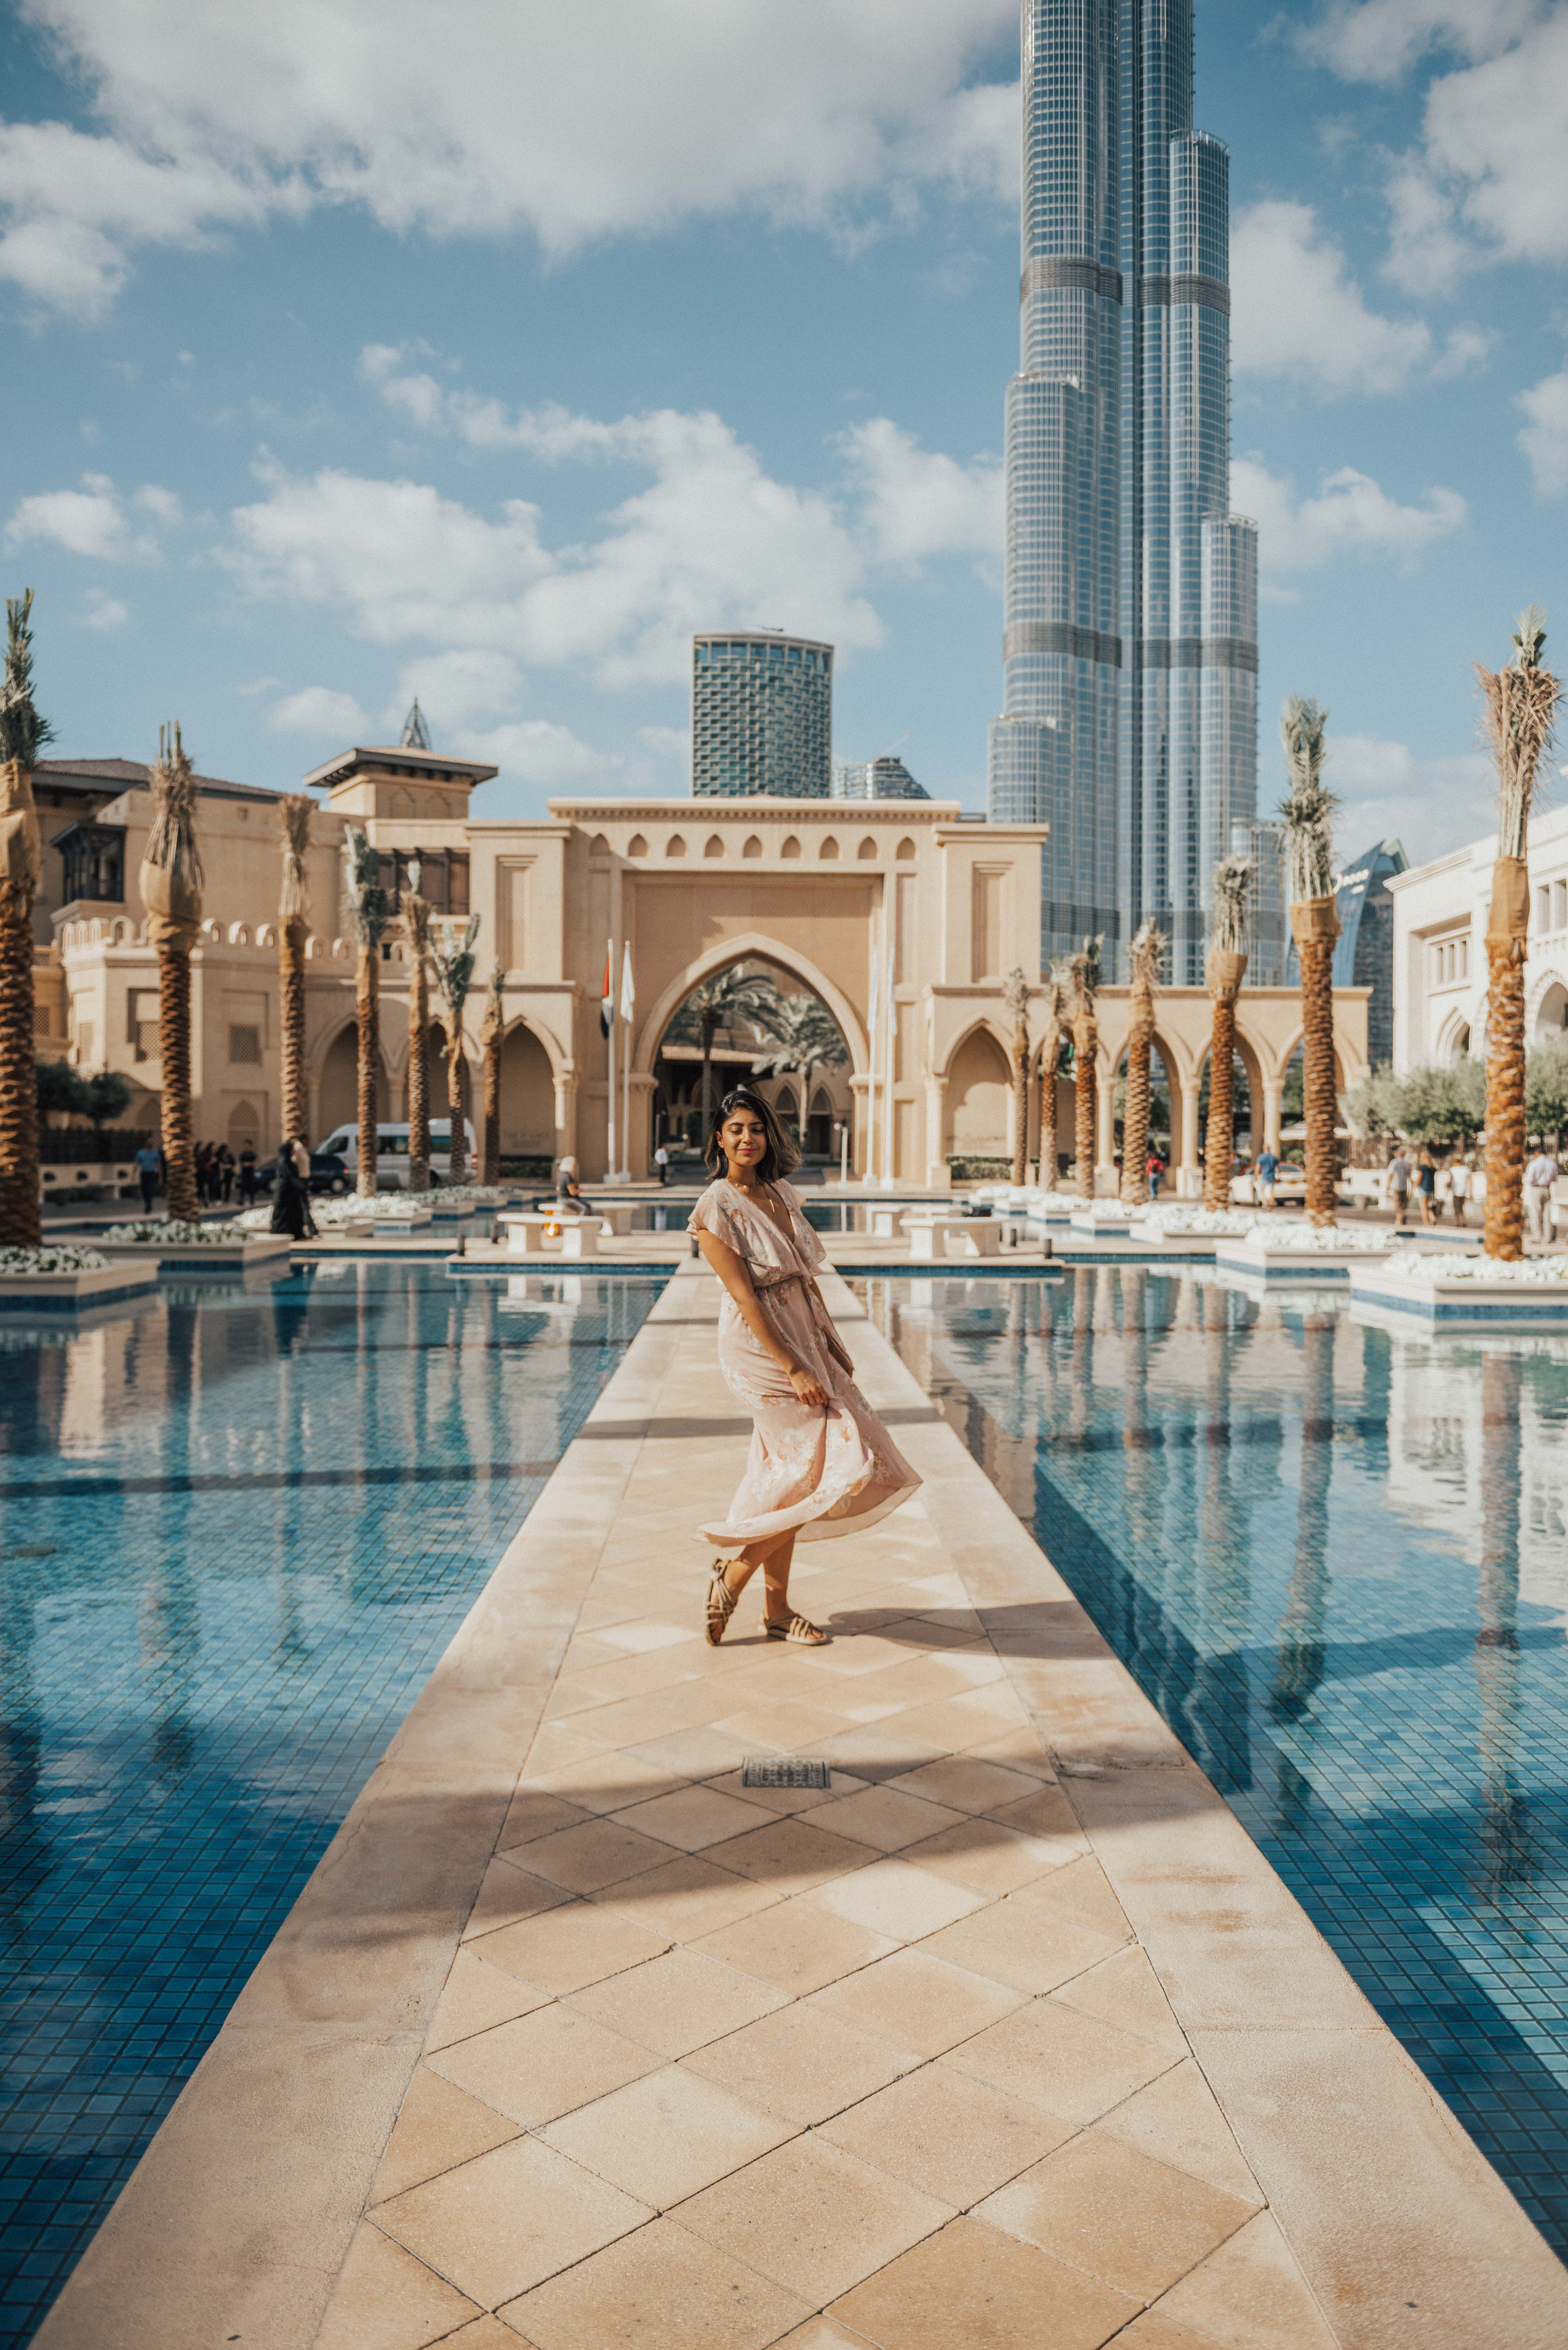 Dubai Travel | Planning a trip to the UAE? Make sure you read this guide, which is full of Dubai travel tips, including things to do in Dubai, Dubai architecture, best restaurants in Dubai, Dubai outfits, and so much more |#dubaitravel#dubaitraveltips